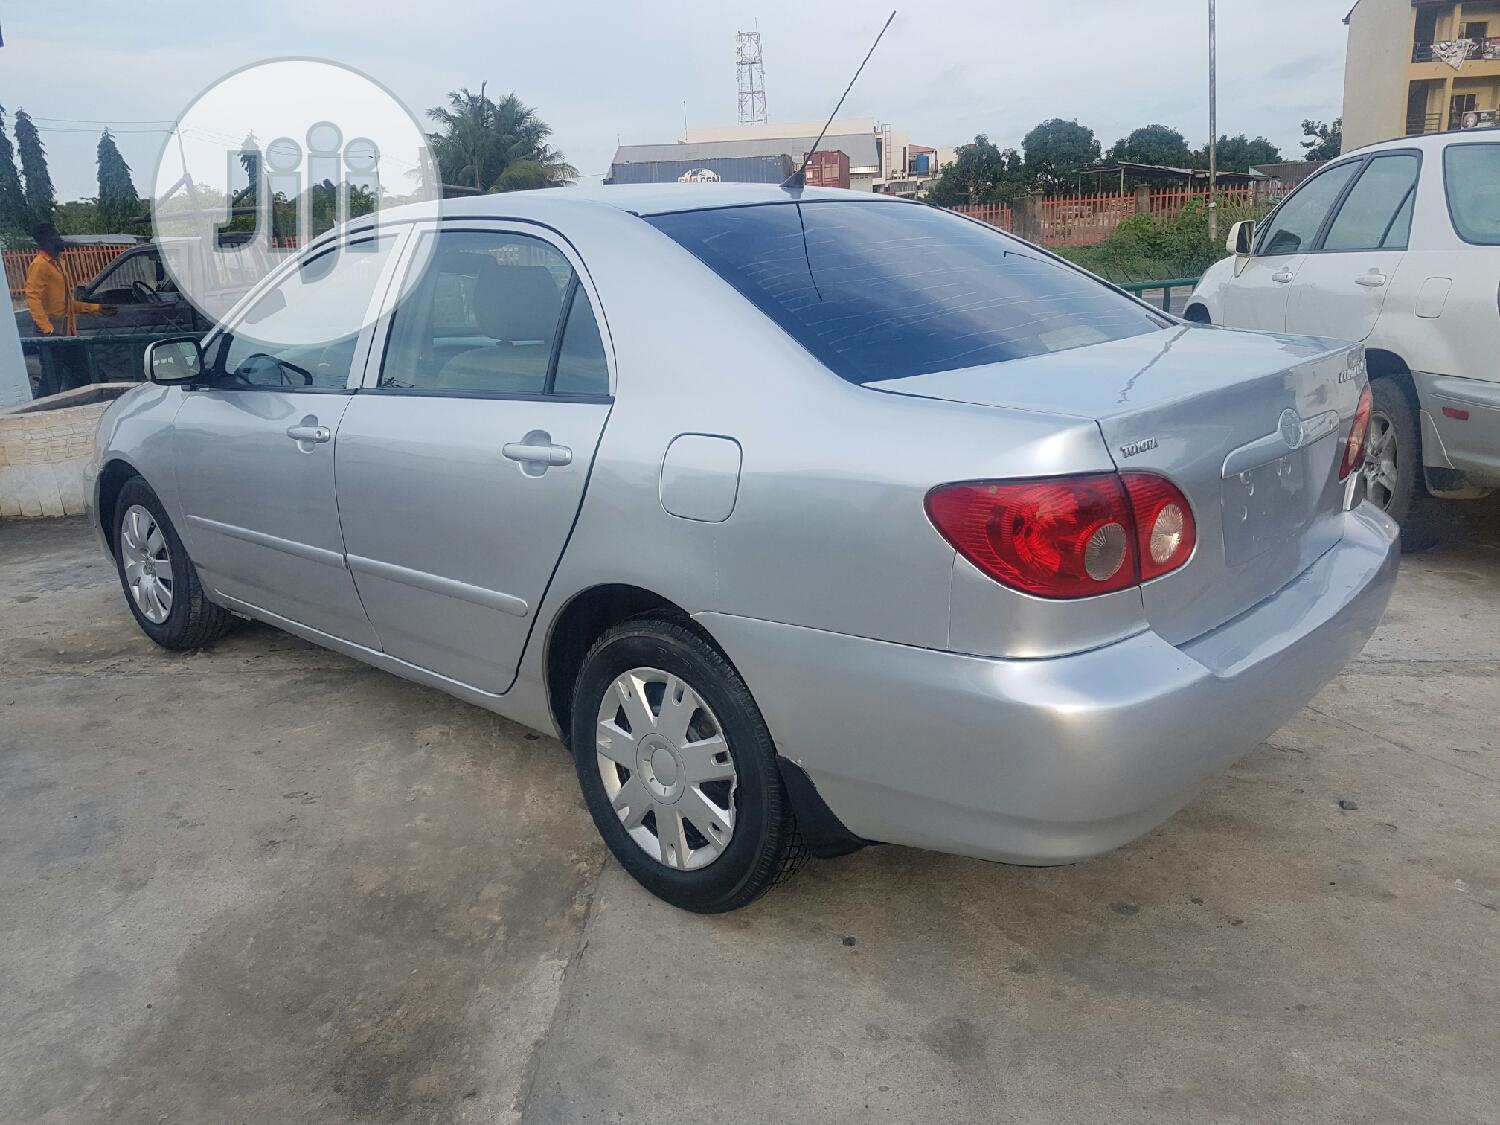 Toyota Corolla 2005 Silver In Ajah Cars Melvin Melvin Jiji Ng For Sale In Ajah Buy Cars From Melvin Melvin On Jiji Ng